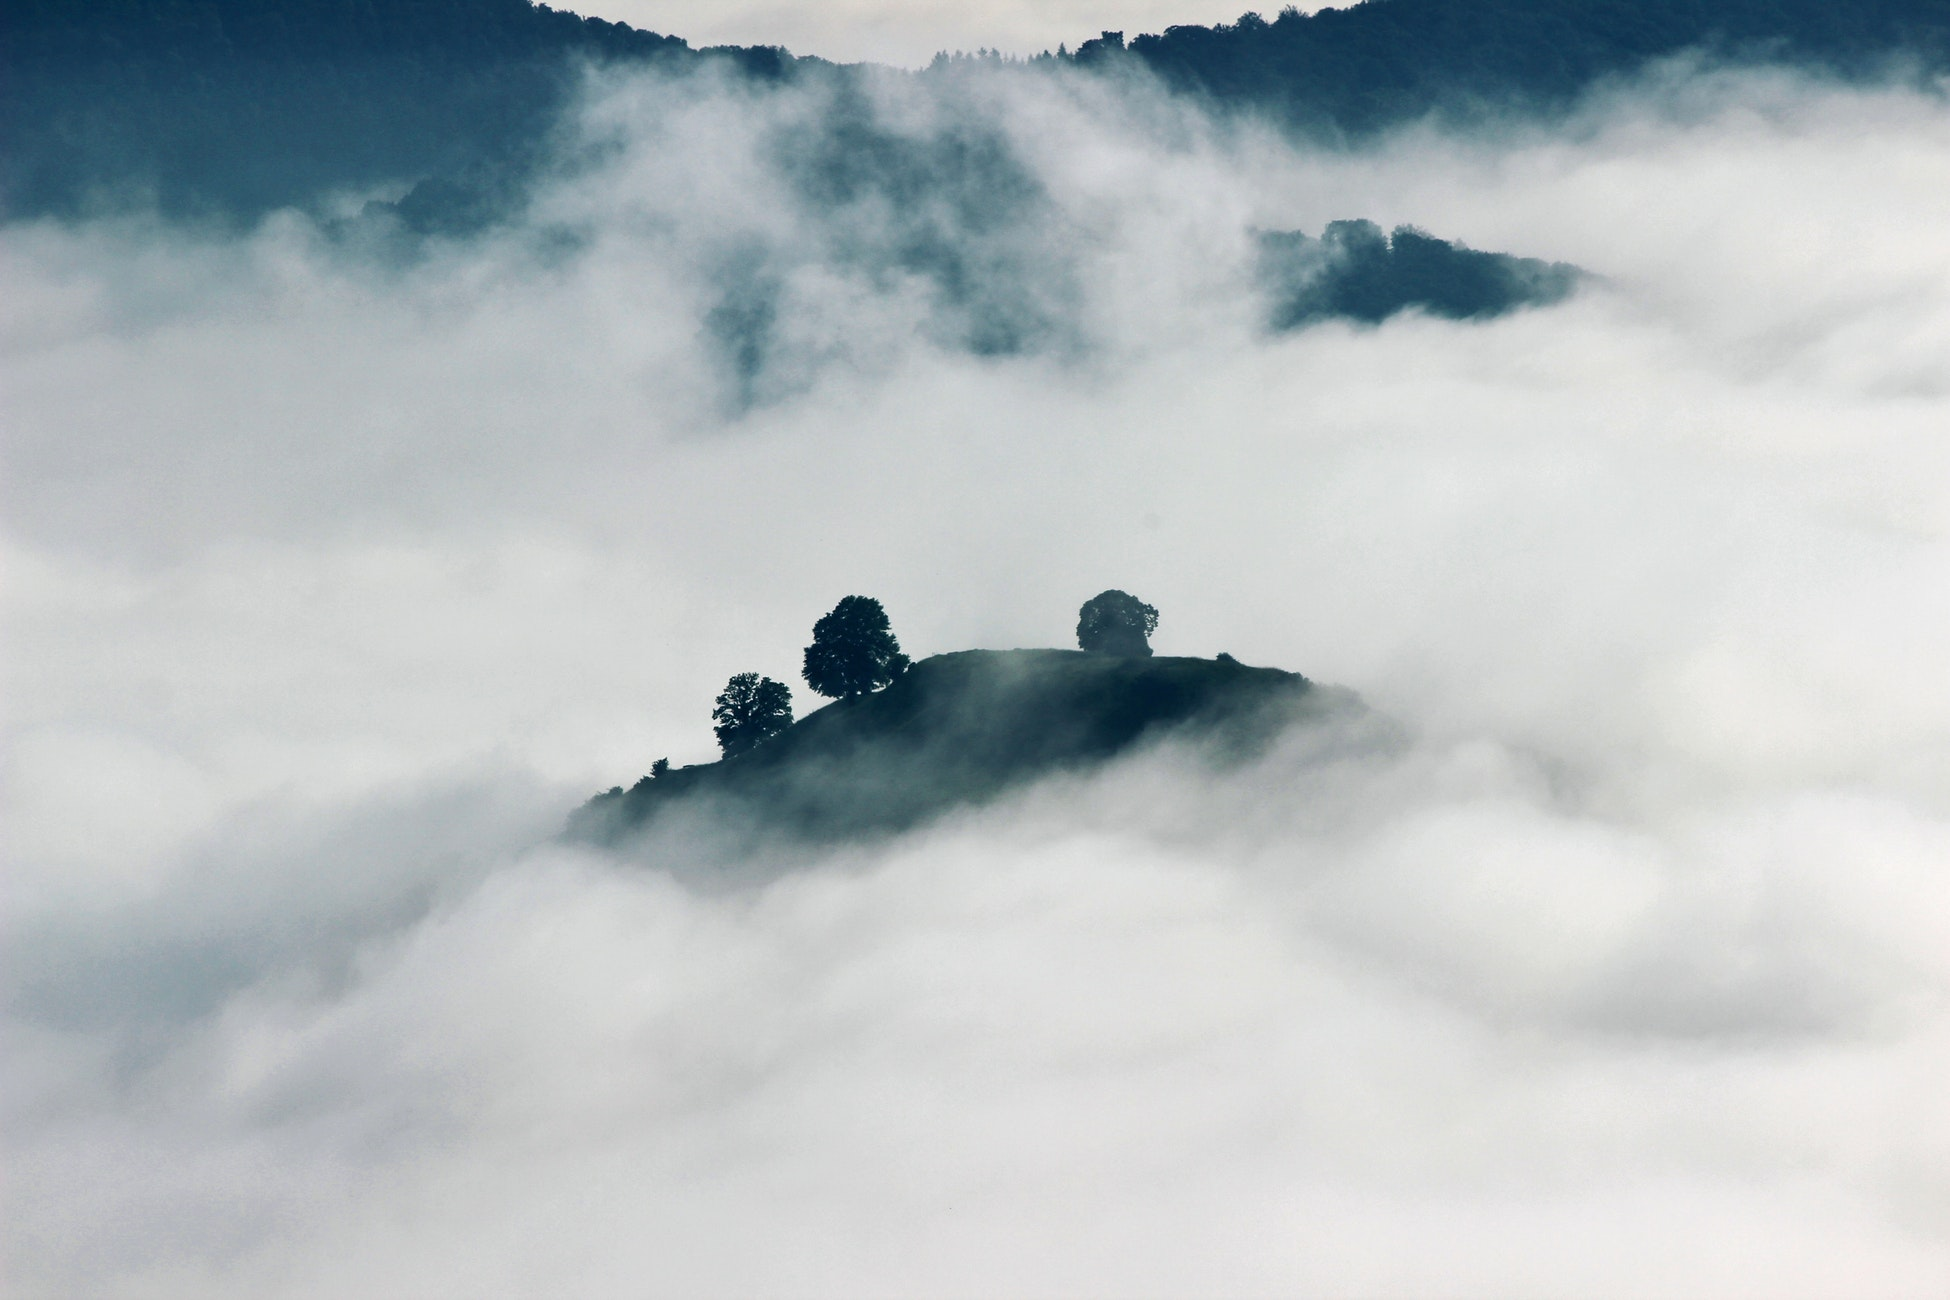 An overlooked landscape of clouds, the tops of mountains with trees cut through the low-hanging clouds